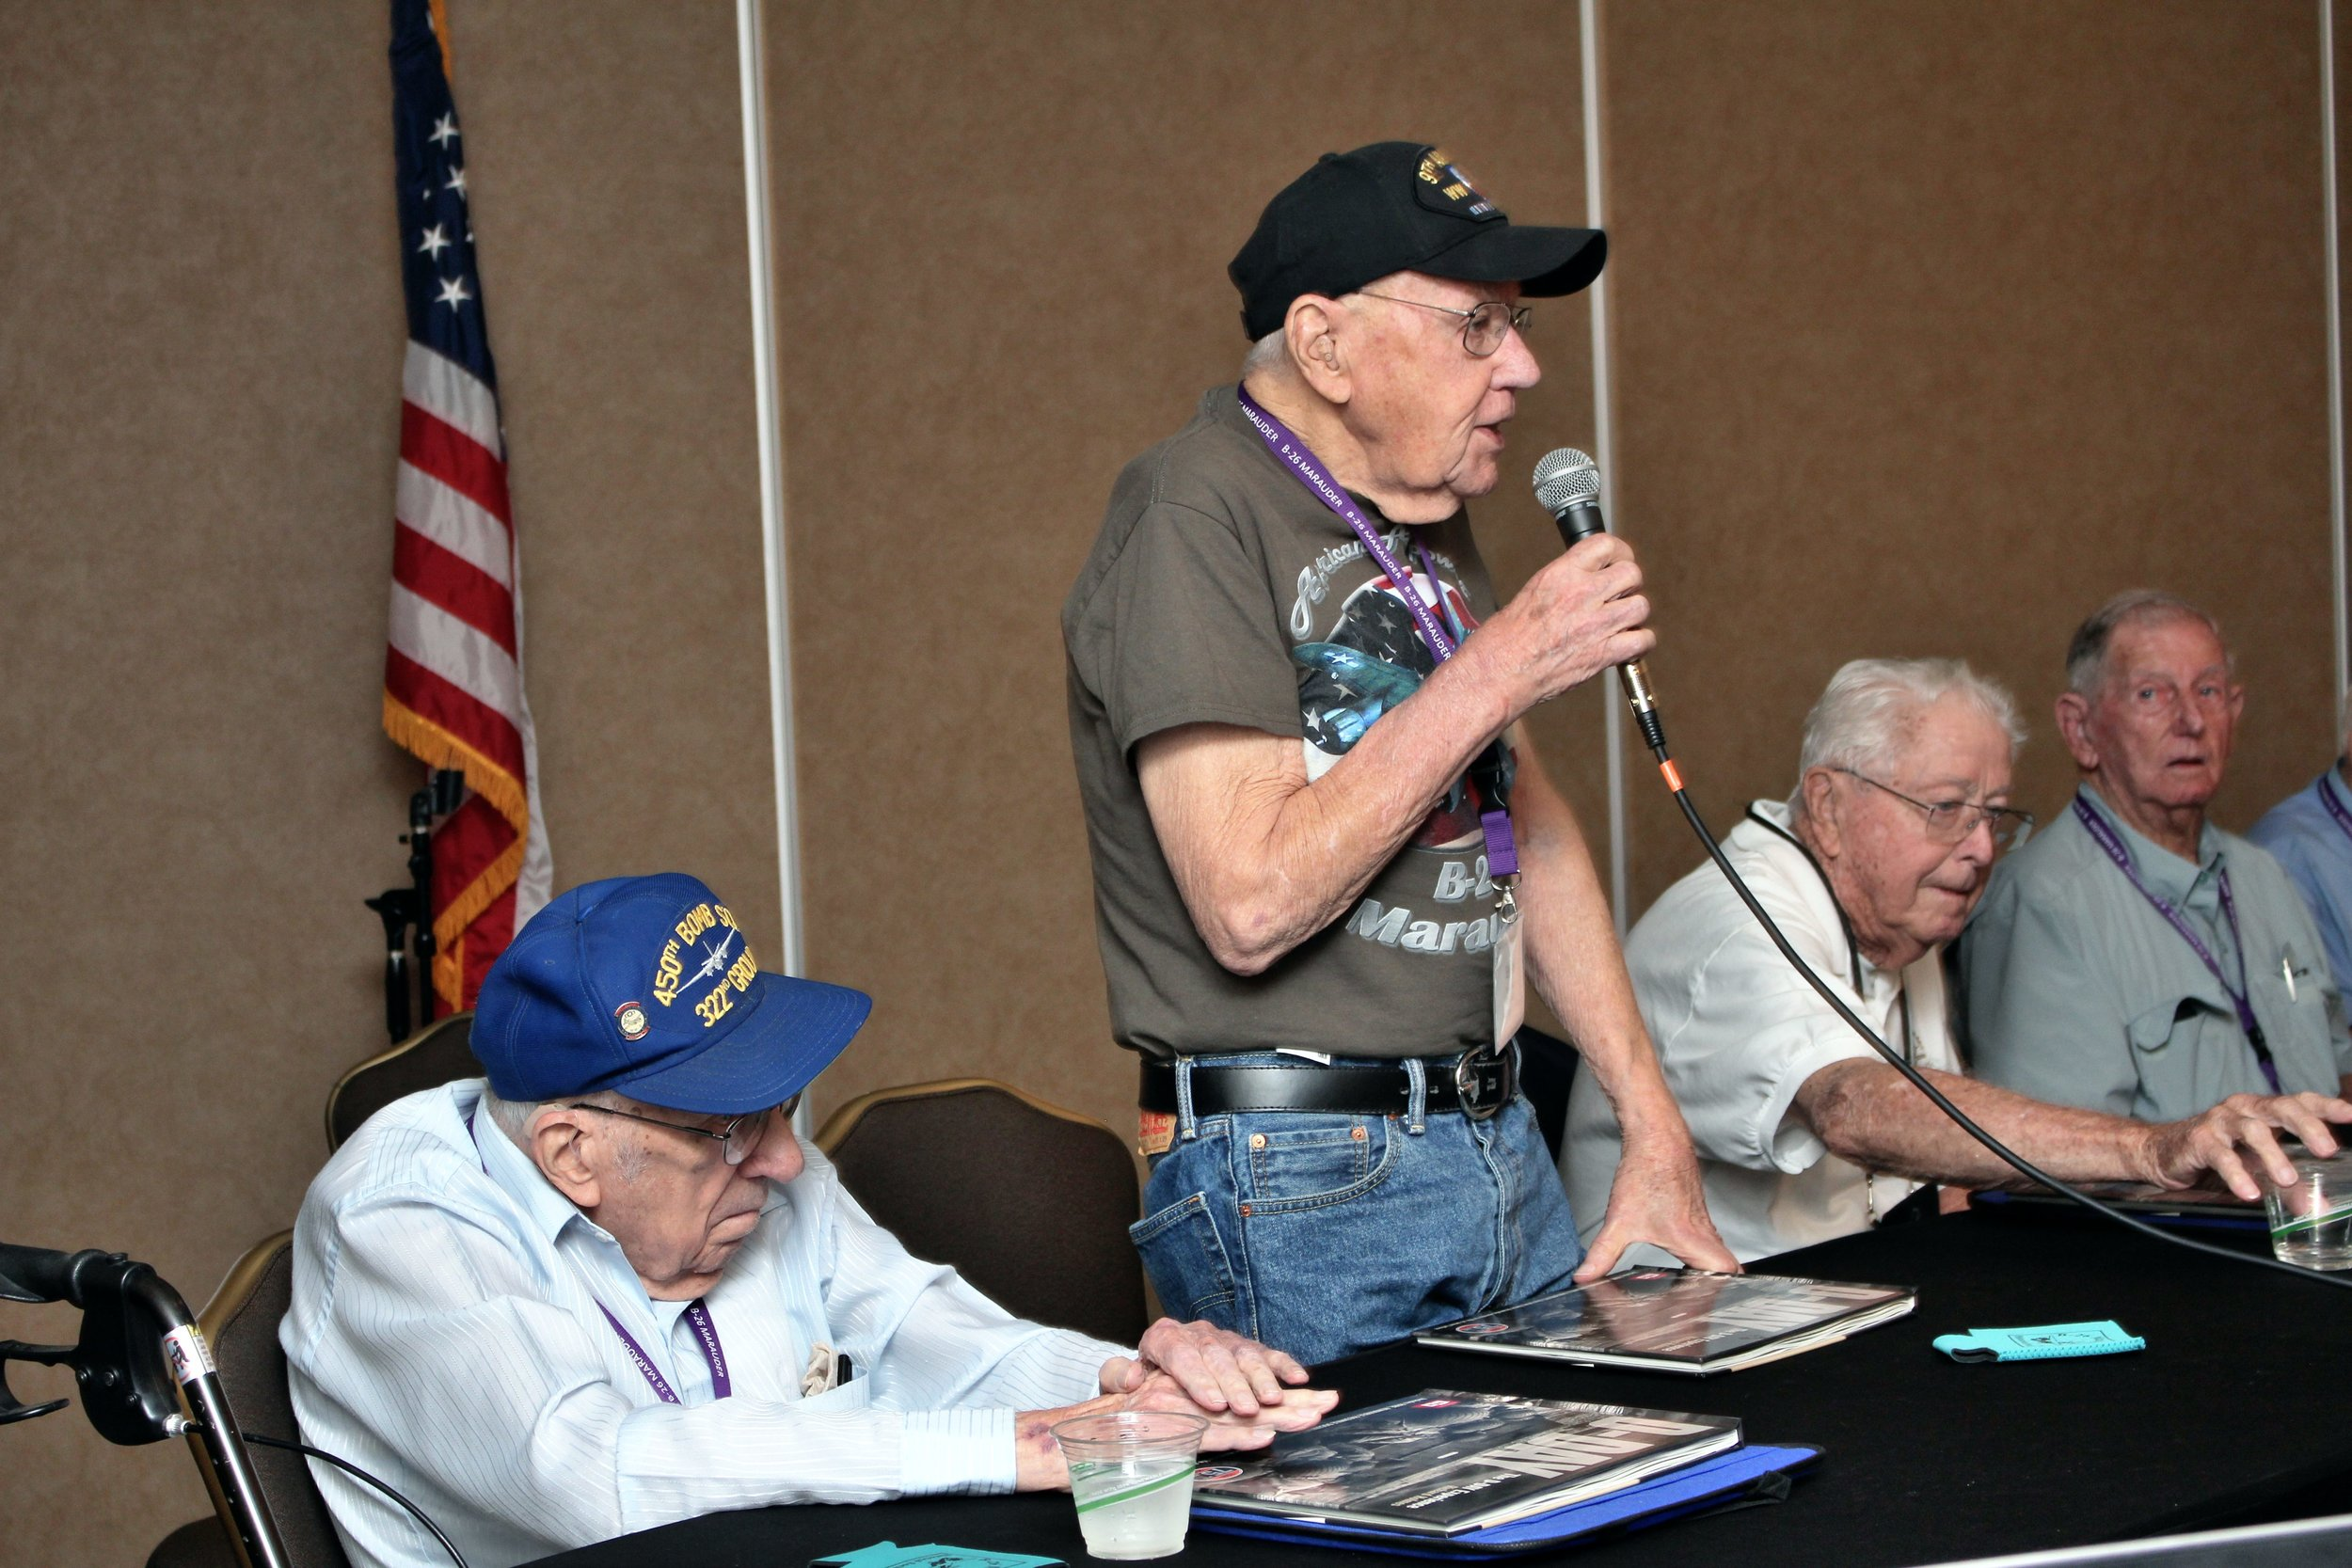 1st Generation Marauder veteran Erwin Powell speaks at the 2019 B-26 reunion on June 8.